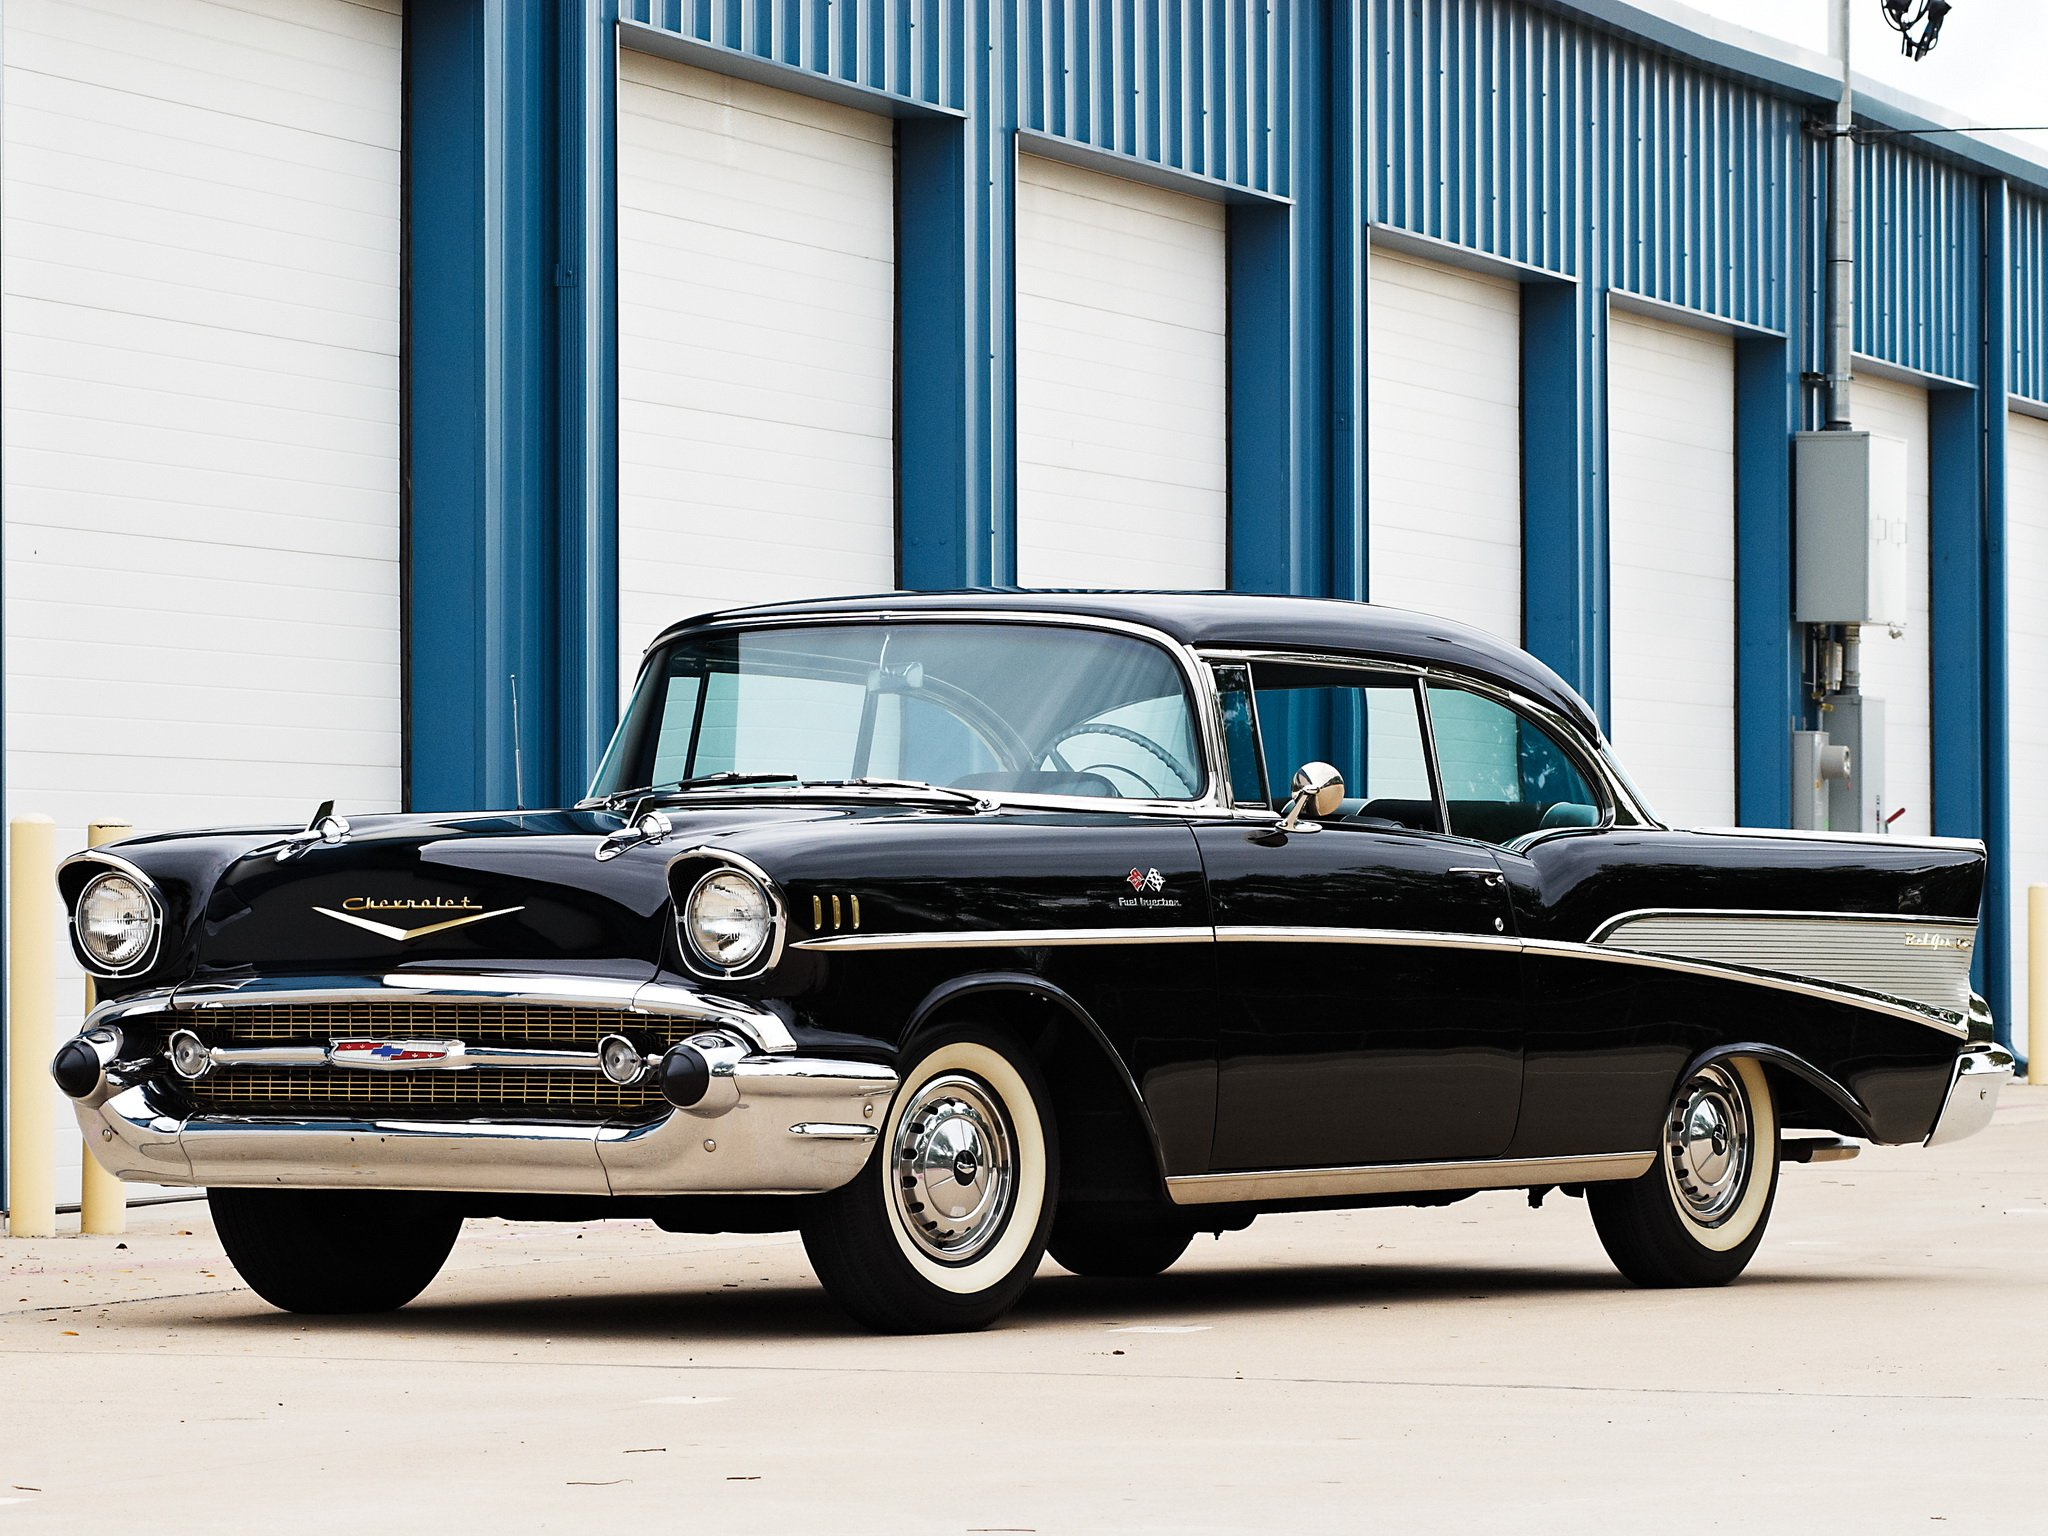 95 Chevy Bel Air Wallpaper 1954 Chevrolet Custom Coupe 2011 F350 Wiring Diagram Http Technoanswersblogspotcom 06 1957 Sport Fuel Injection Classic Cars Black